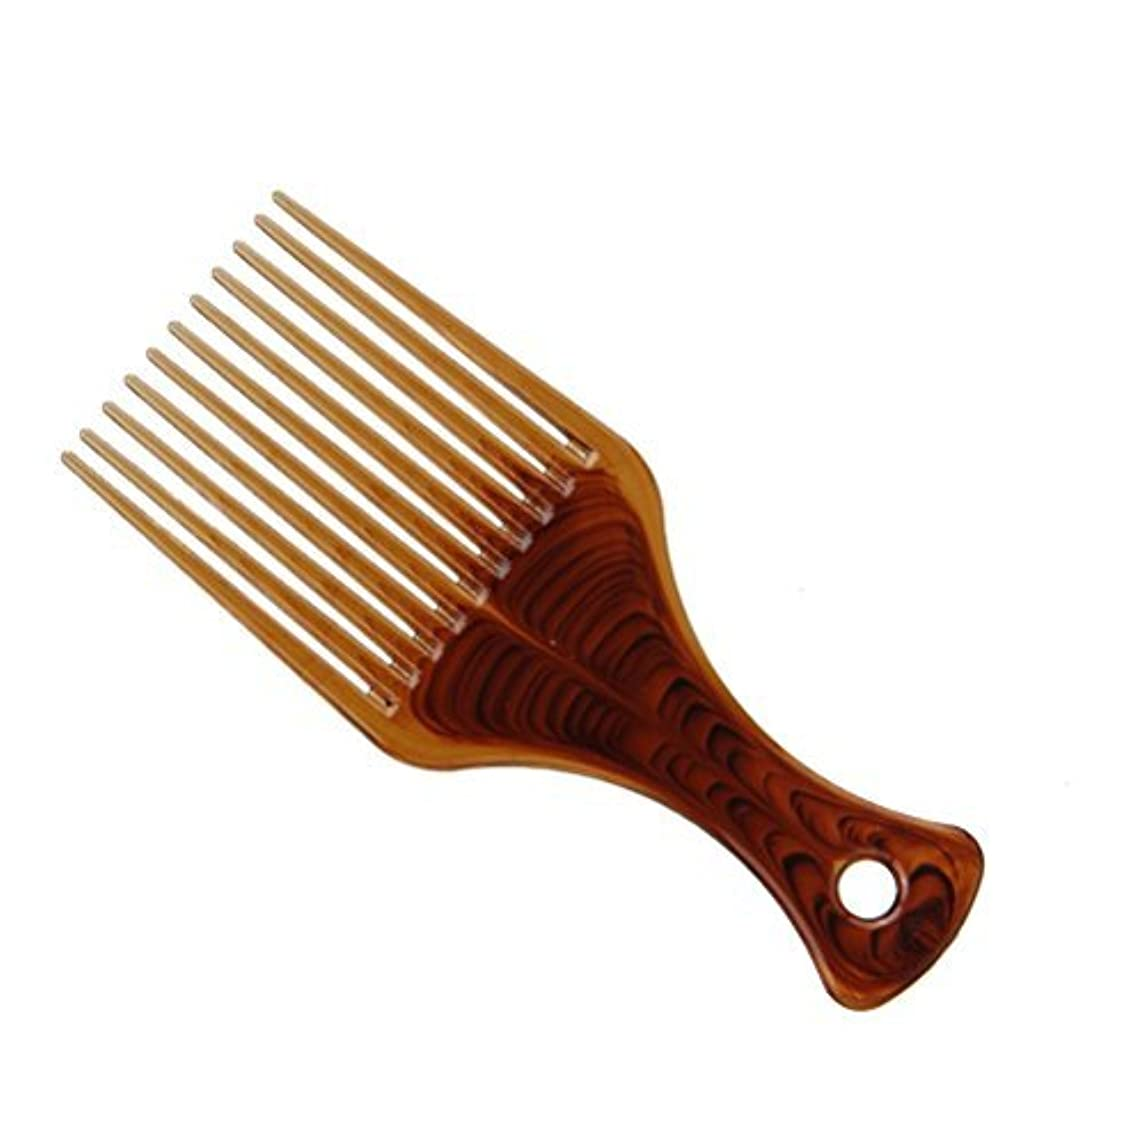 ぬるいそうでなければ分泌するUltra Smooth No Frizz Hair Lift Pick Comb for Hairstyle (Coffee) [並行輸入品]